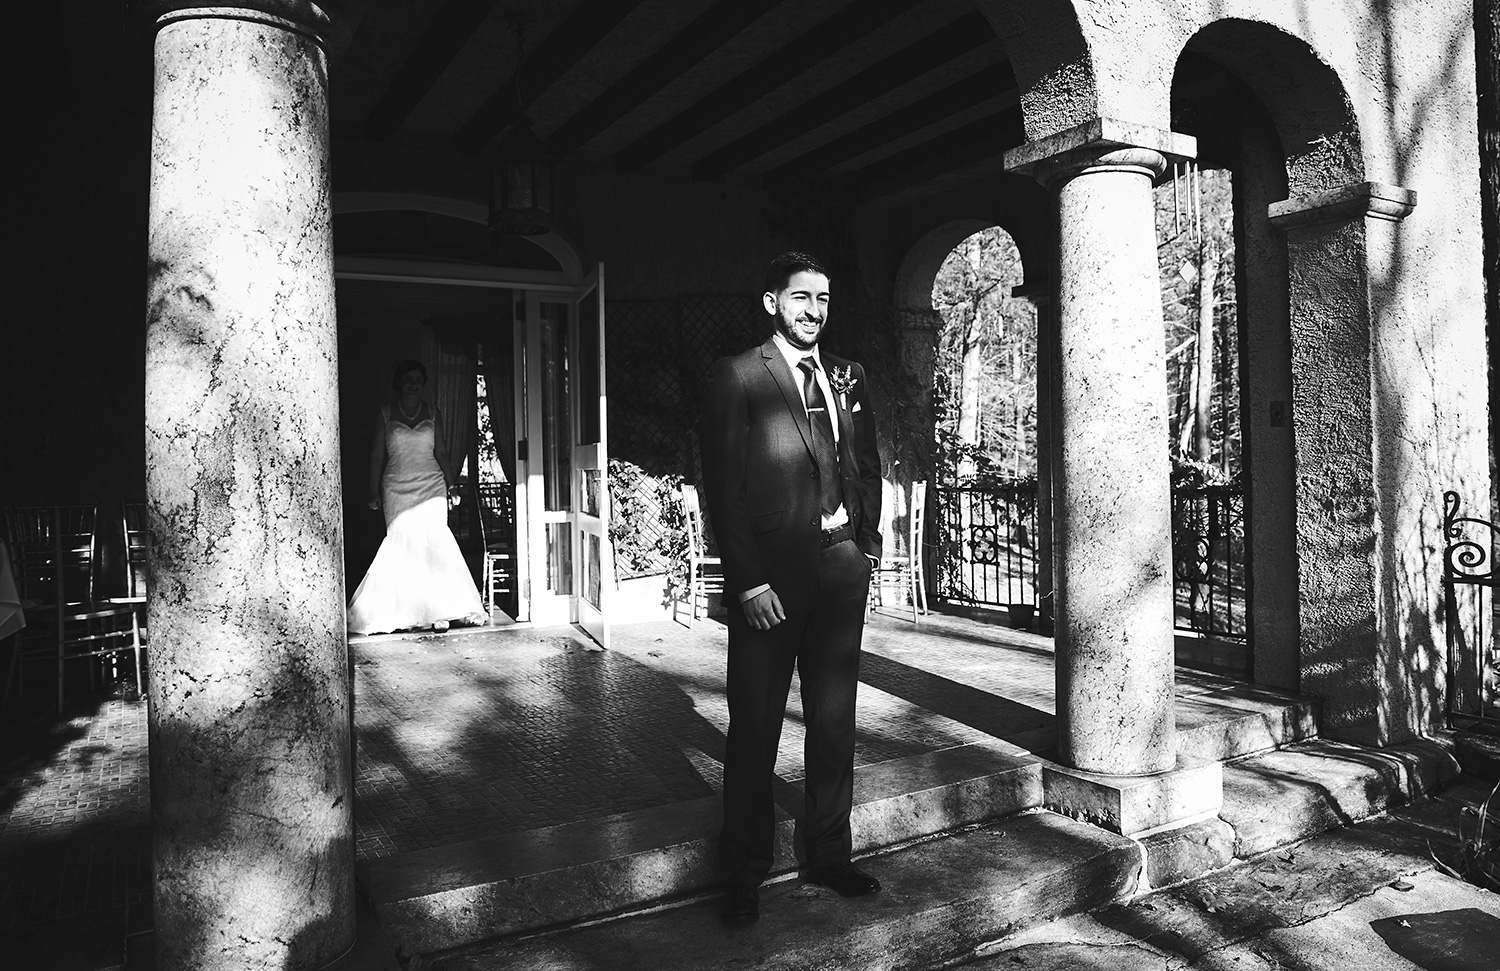 161119_ArrowParkLake&LodgeWedding_By_BriJohnsonWeddings_0046.jpg